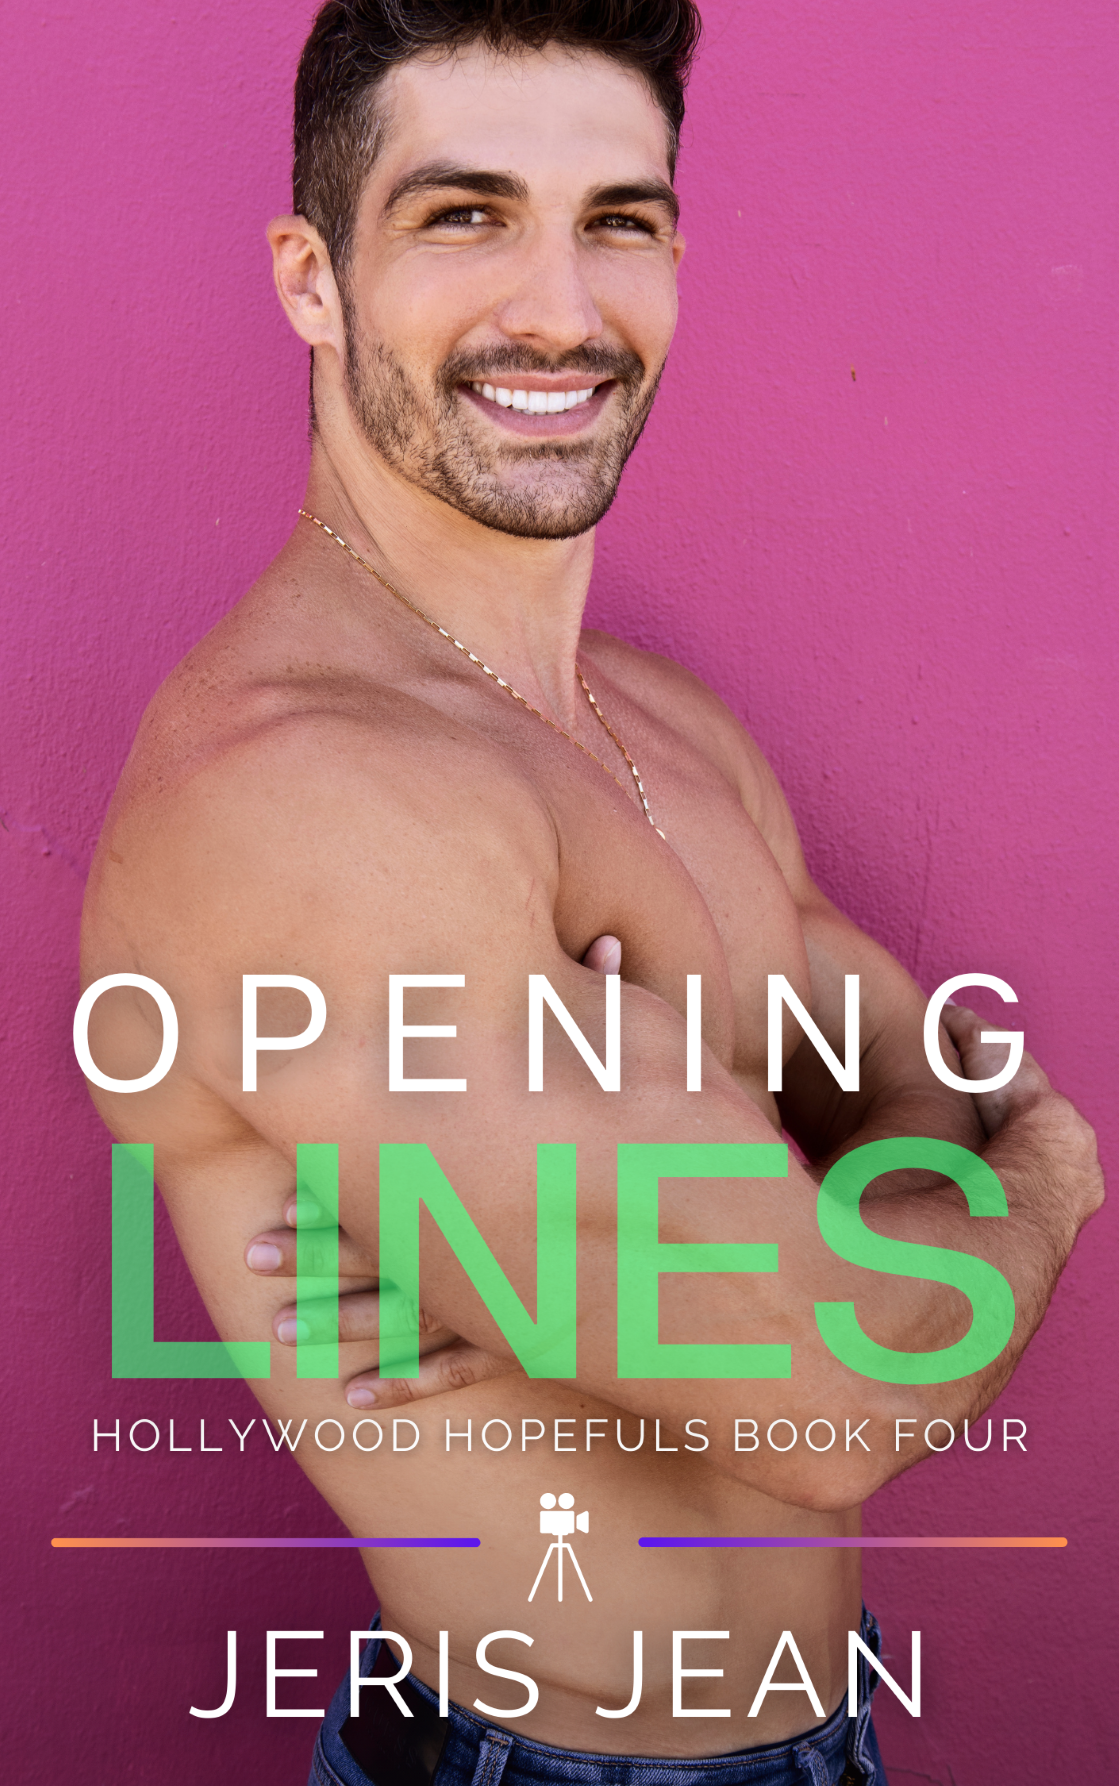 Opening Lines Book COver by Jeris Jean